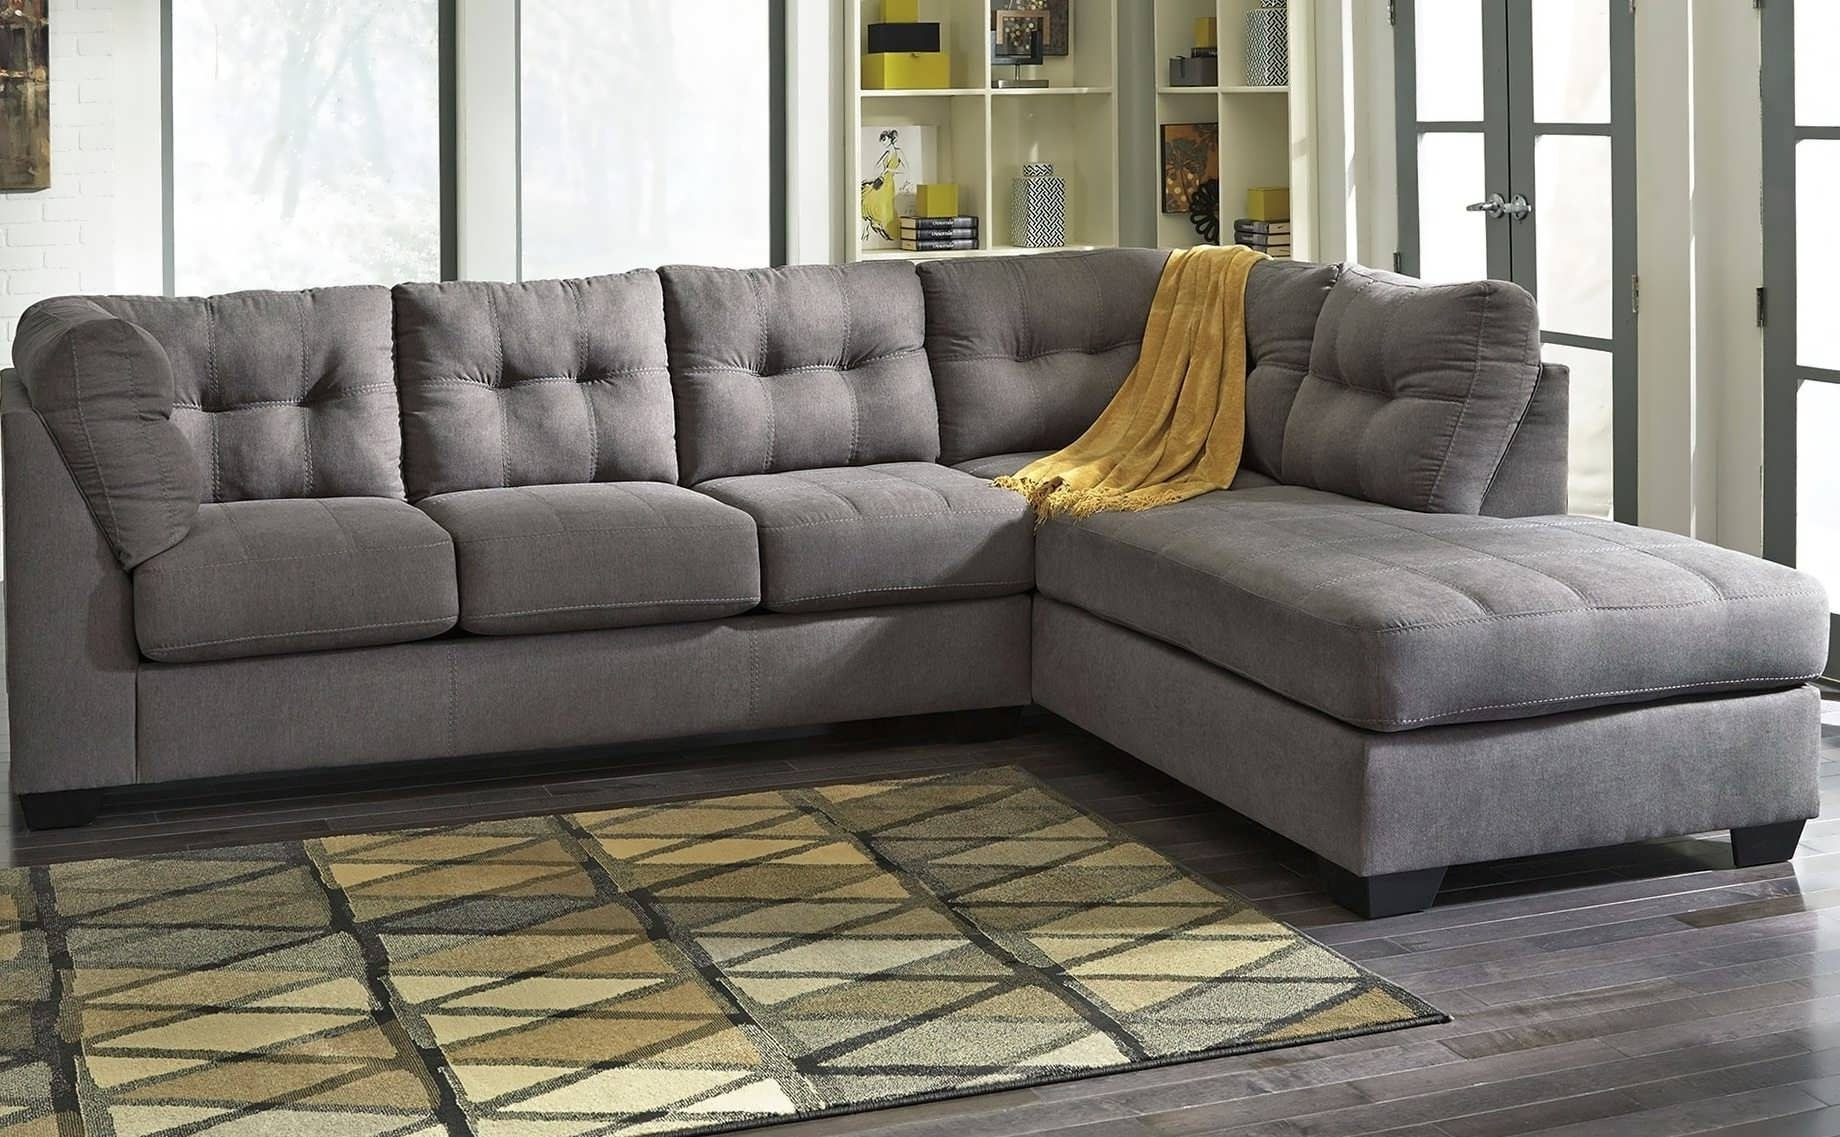 Well Known Grey Sofa Chaises Within Sofa : Gray Sectional Couch Sectional With Chaise Large Sectional (View 14 of 15)